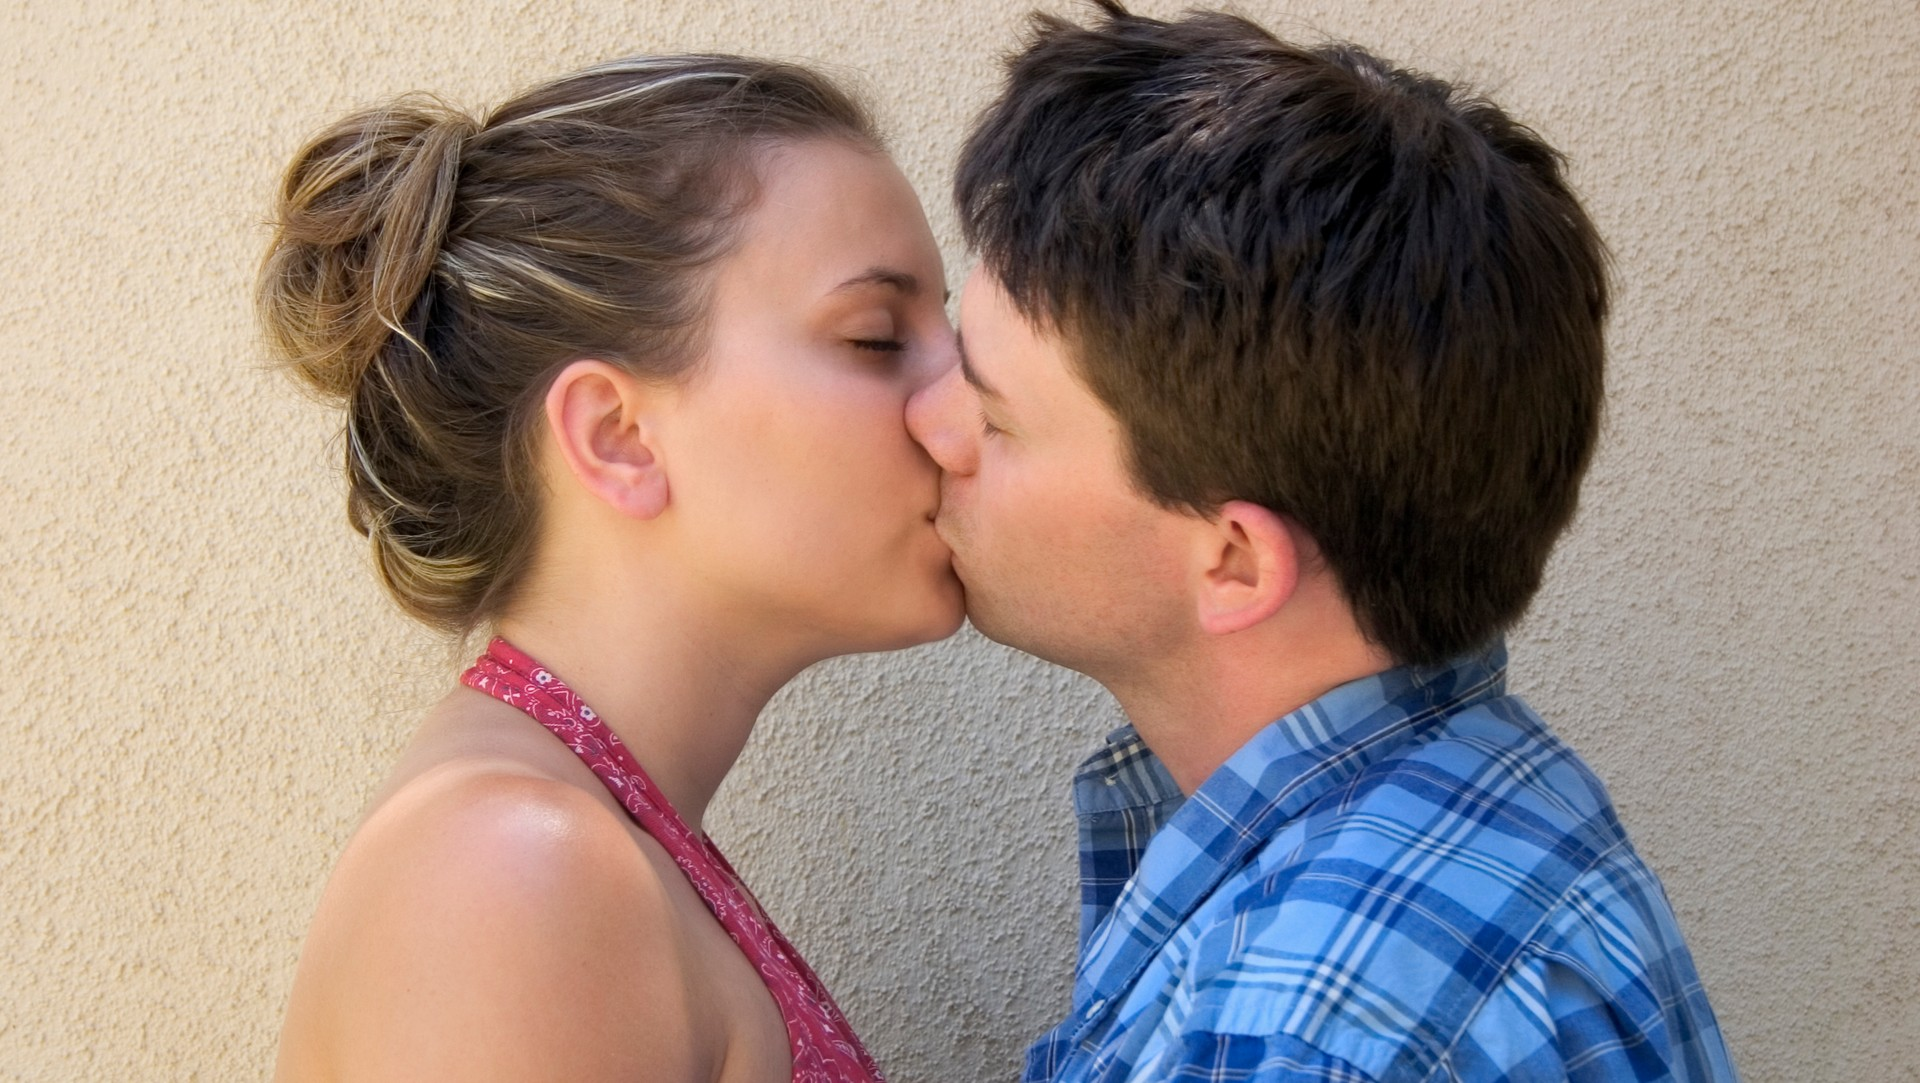 photo-of-teen-girl-with-long-hair-kissing-boy